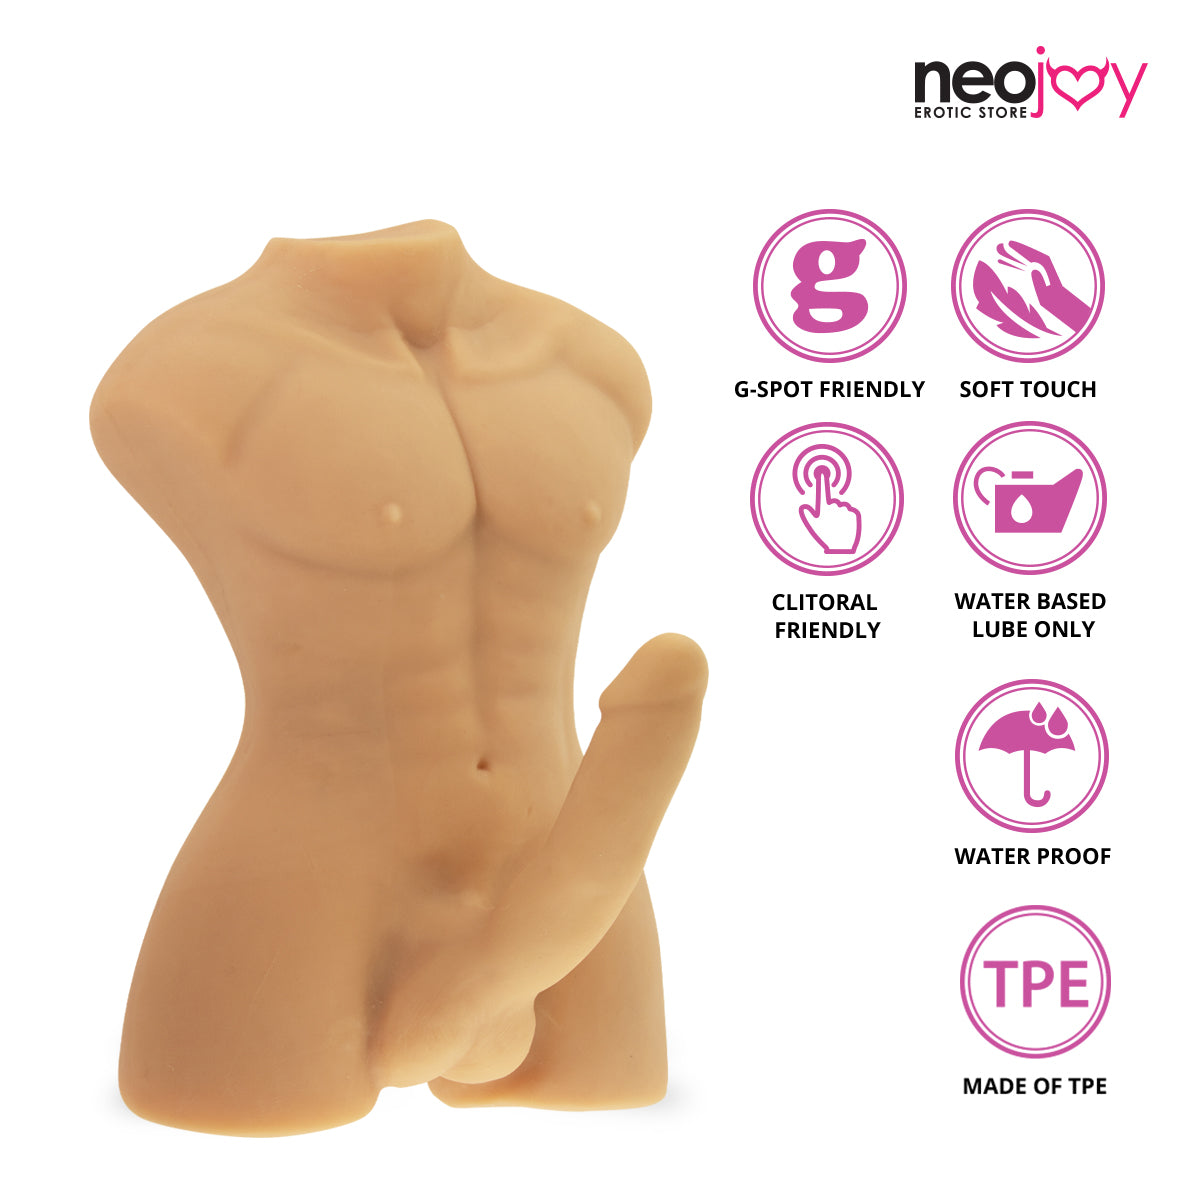 Neojoy Realistic Dildo Male Sex Doll TPE - Flesh 8.9KG 5